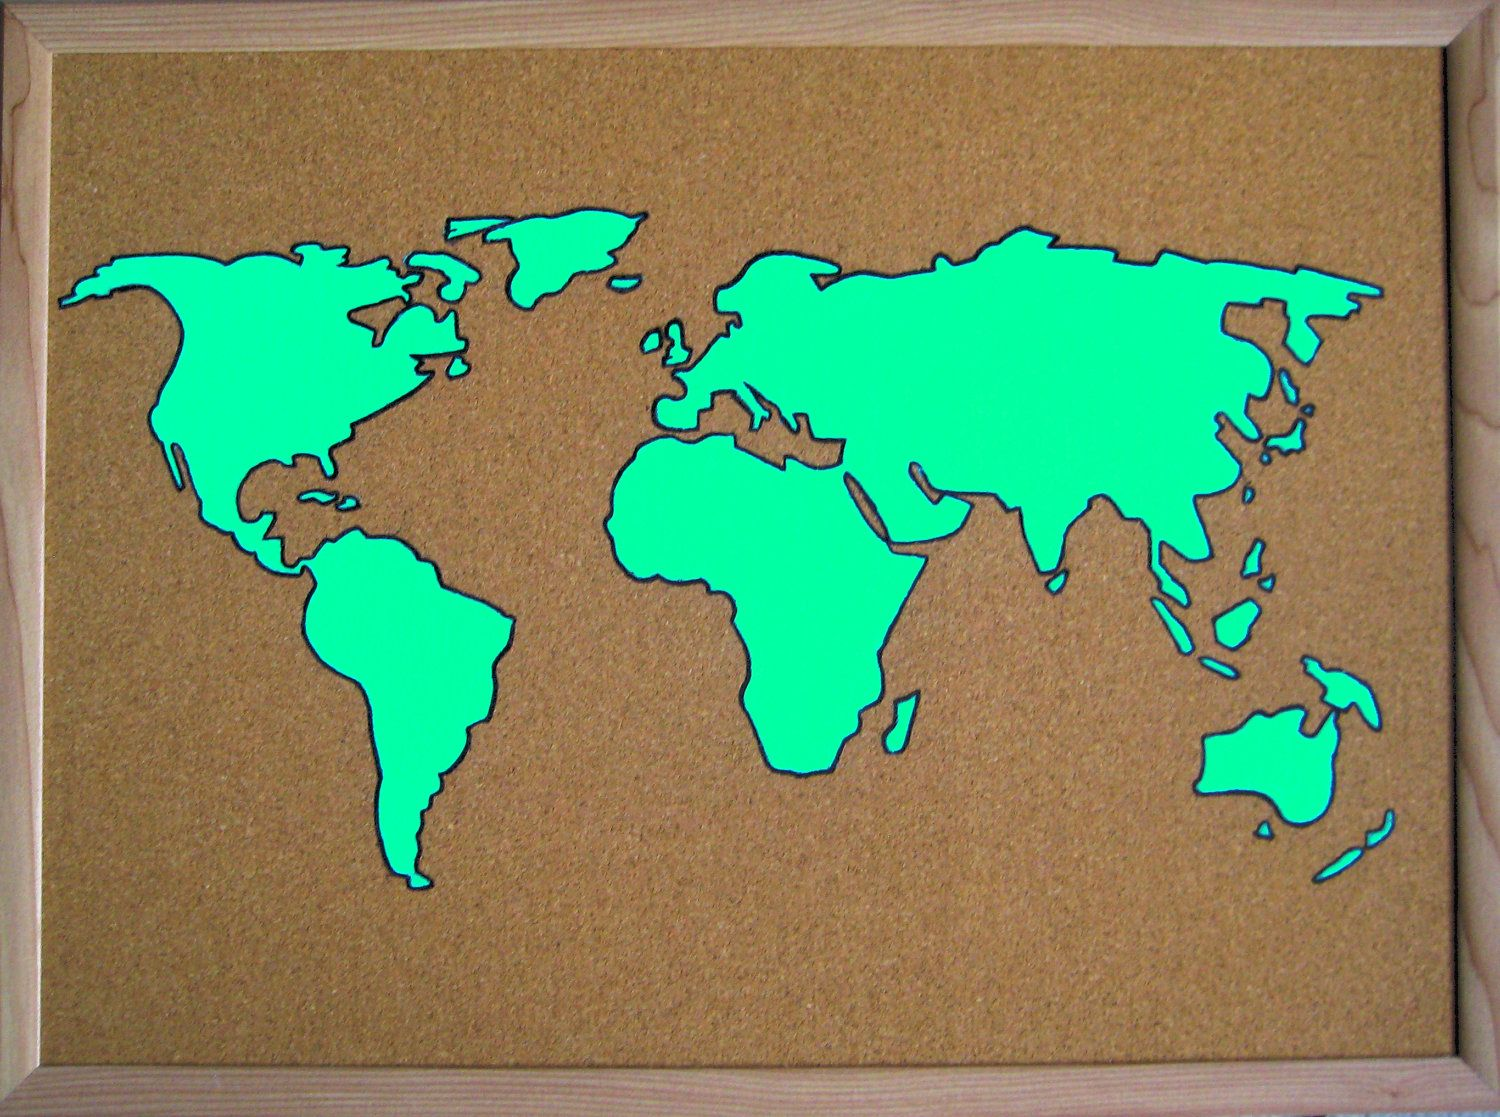 Colorful hand painted corkboard world map 17 x 23 4500 via colorful hand painted corkboard world map 17 x 23 4500 via etsy gumiabroncs Choice Image